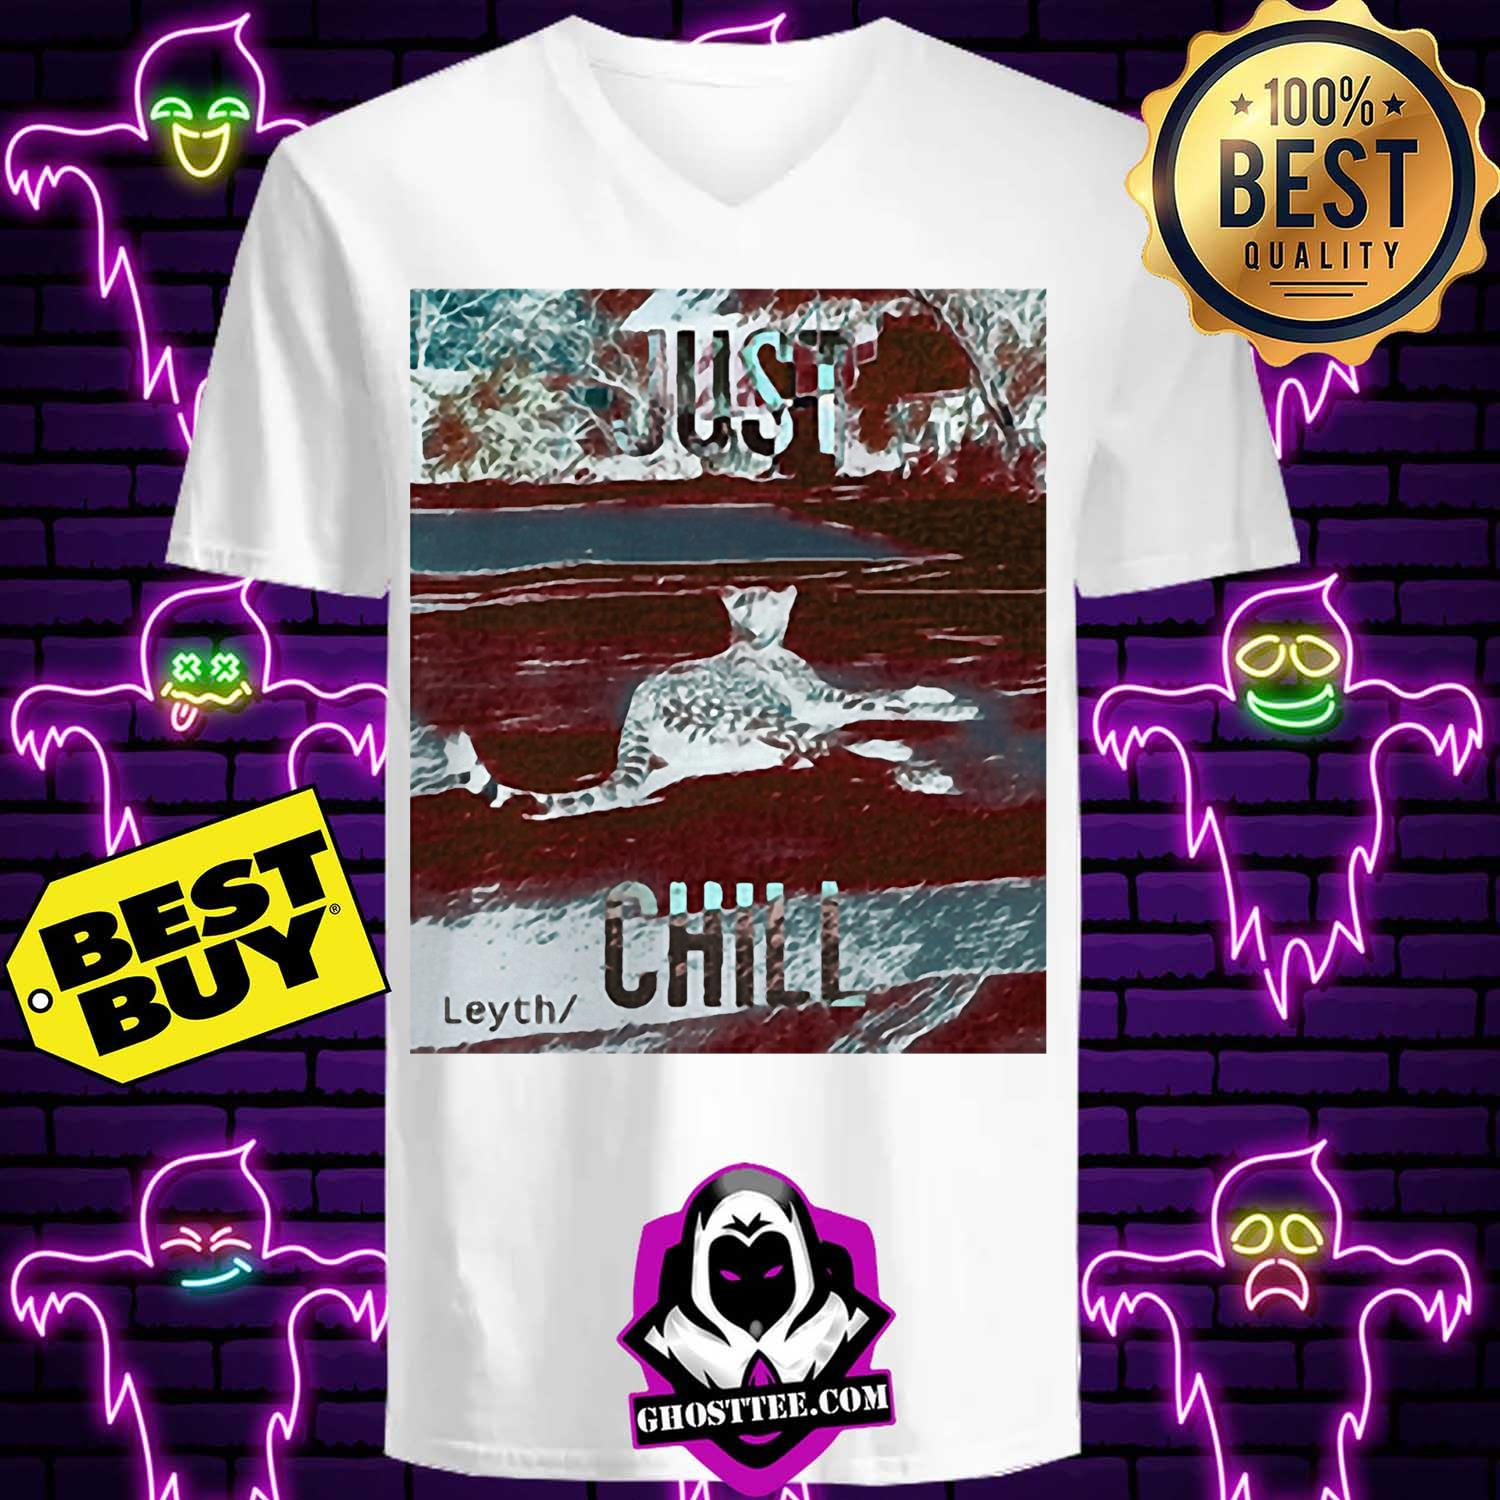 just chill ocelot leyth hoodie - Just chill Ocelot Leyth vintage shirt